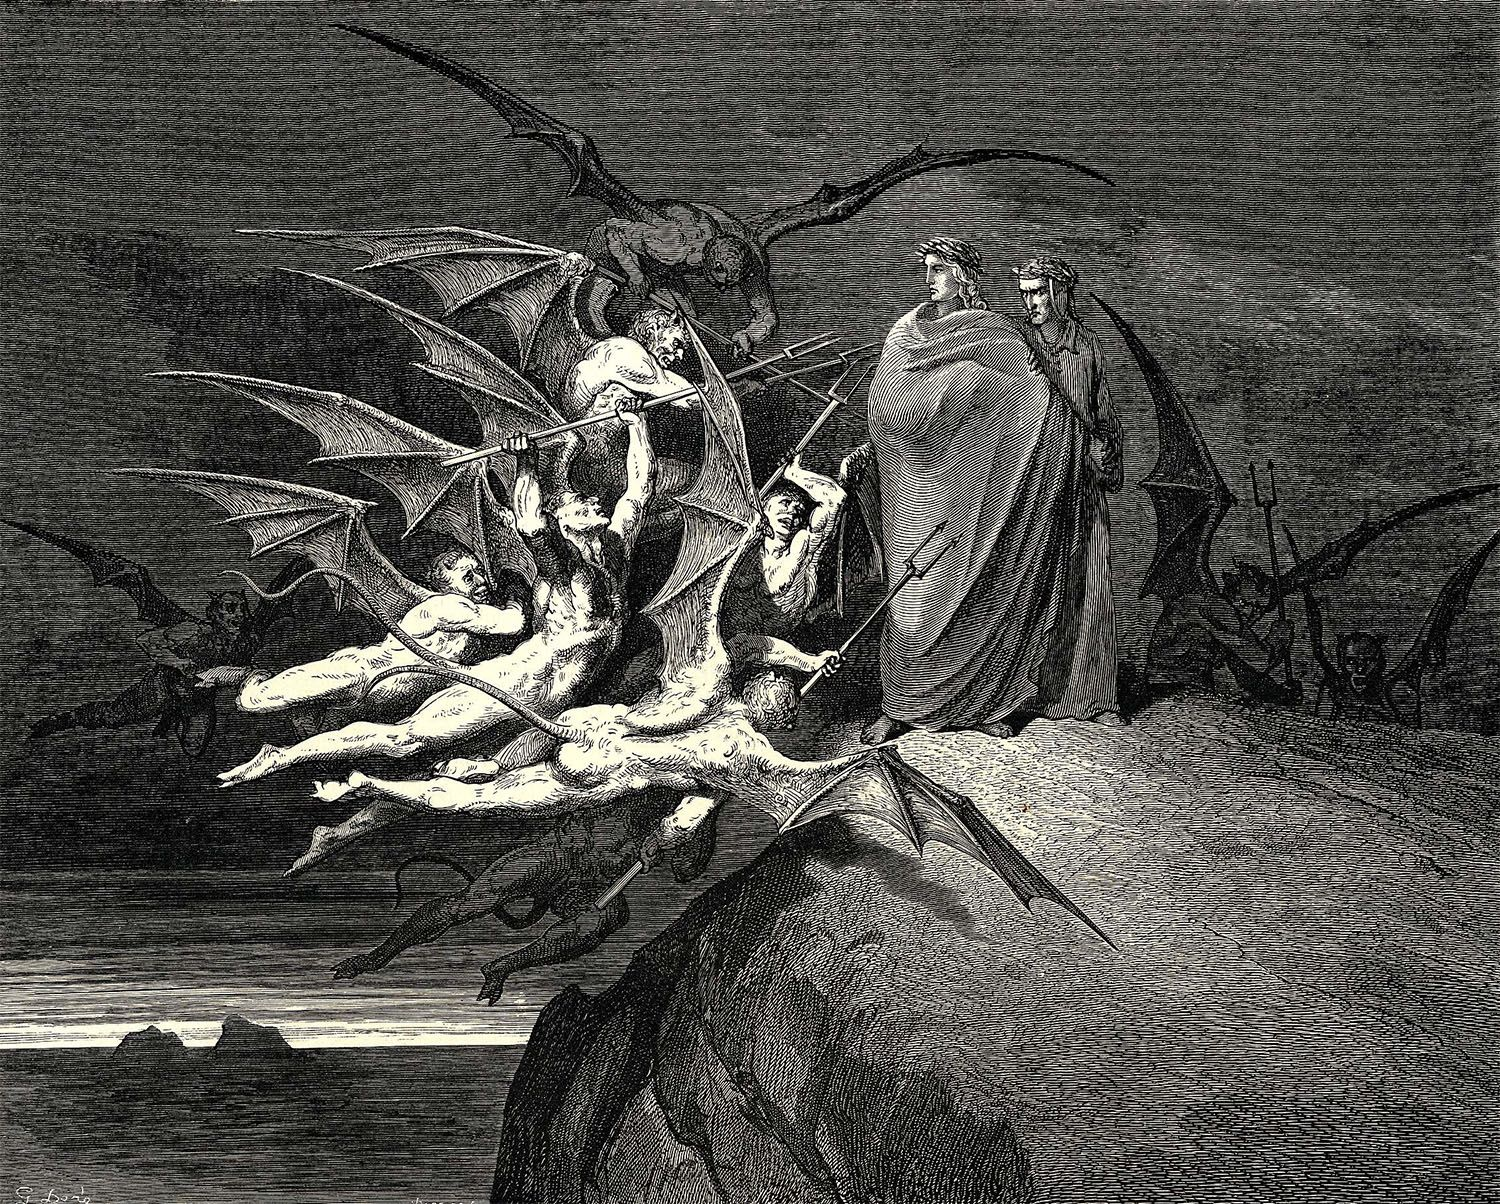 st augustine in the dantes inferno essay Comparing the spiritual journeys of dante and st augustine october 20, 2016 admin st augustine and dante made a great contribution to the development of world cultures.